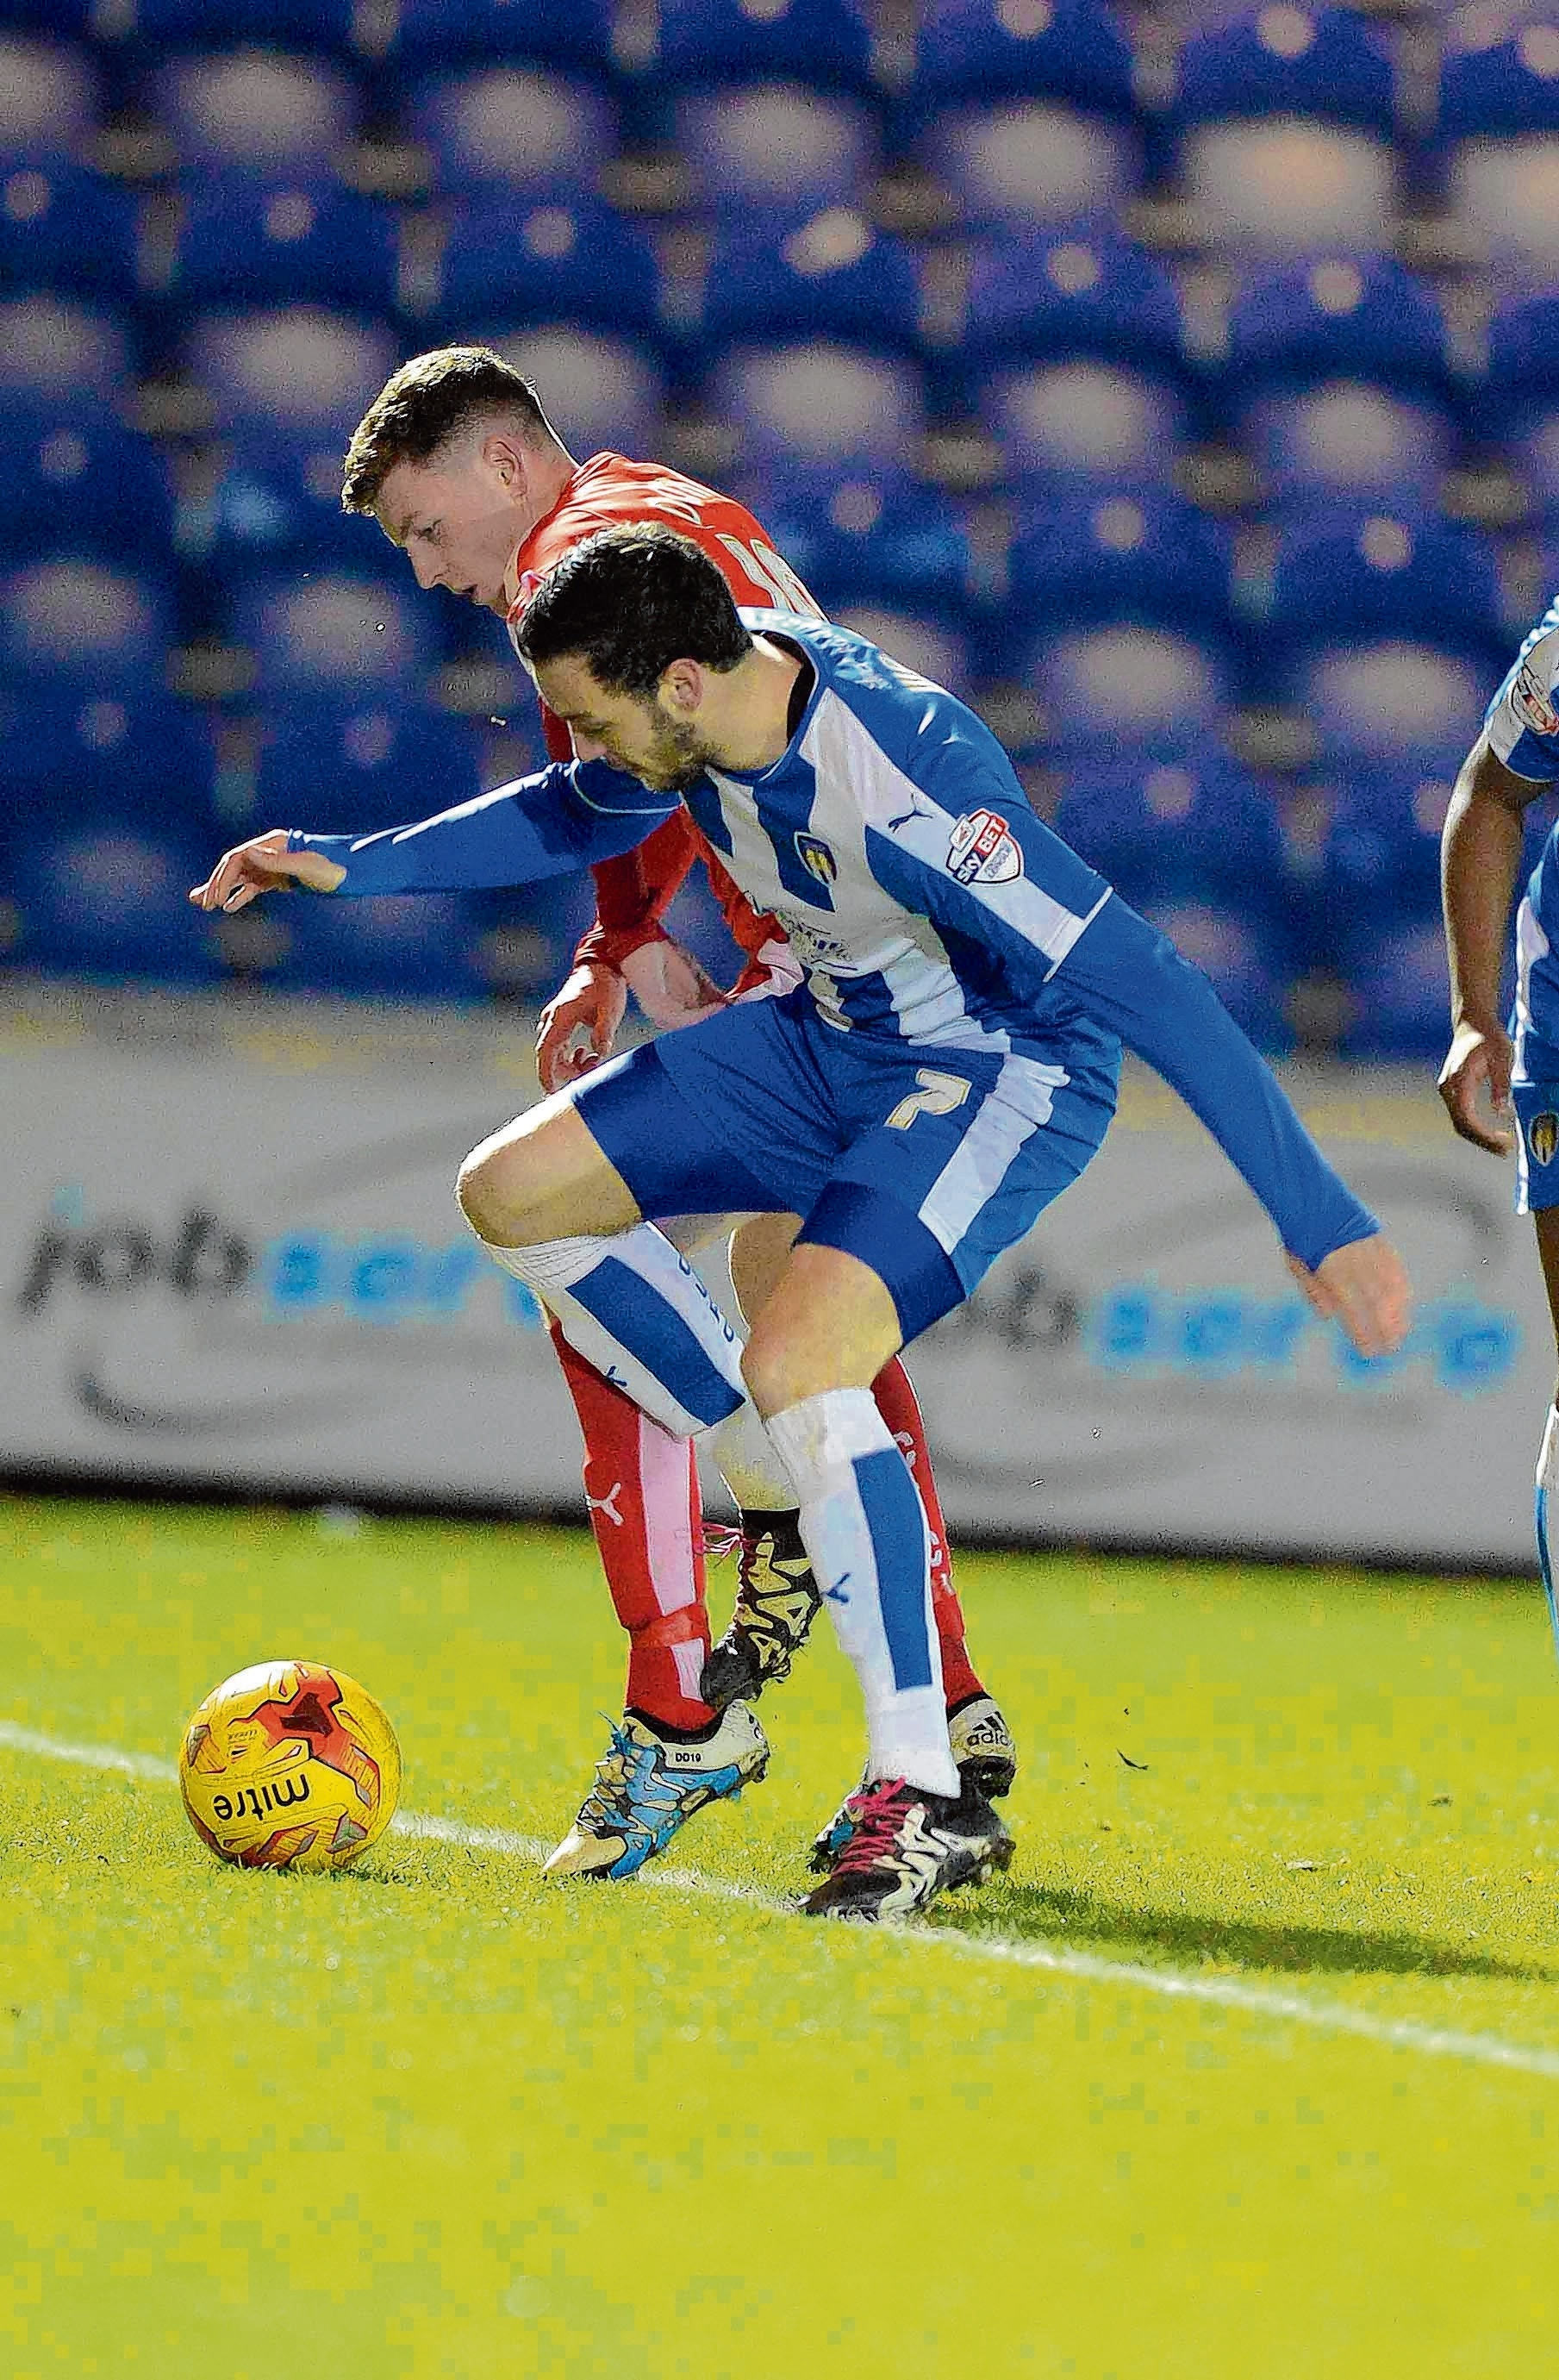 Wing play - Drey Wright battles for possession during Colchester United's 1-1 draw with Chesterfield. Picture: STEVE BRADING (CO114335-141)